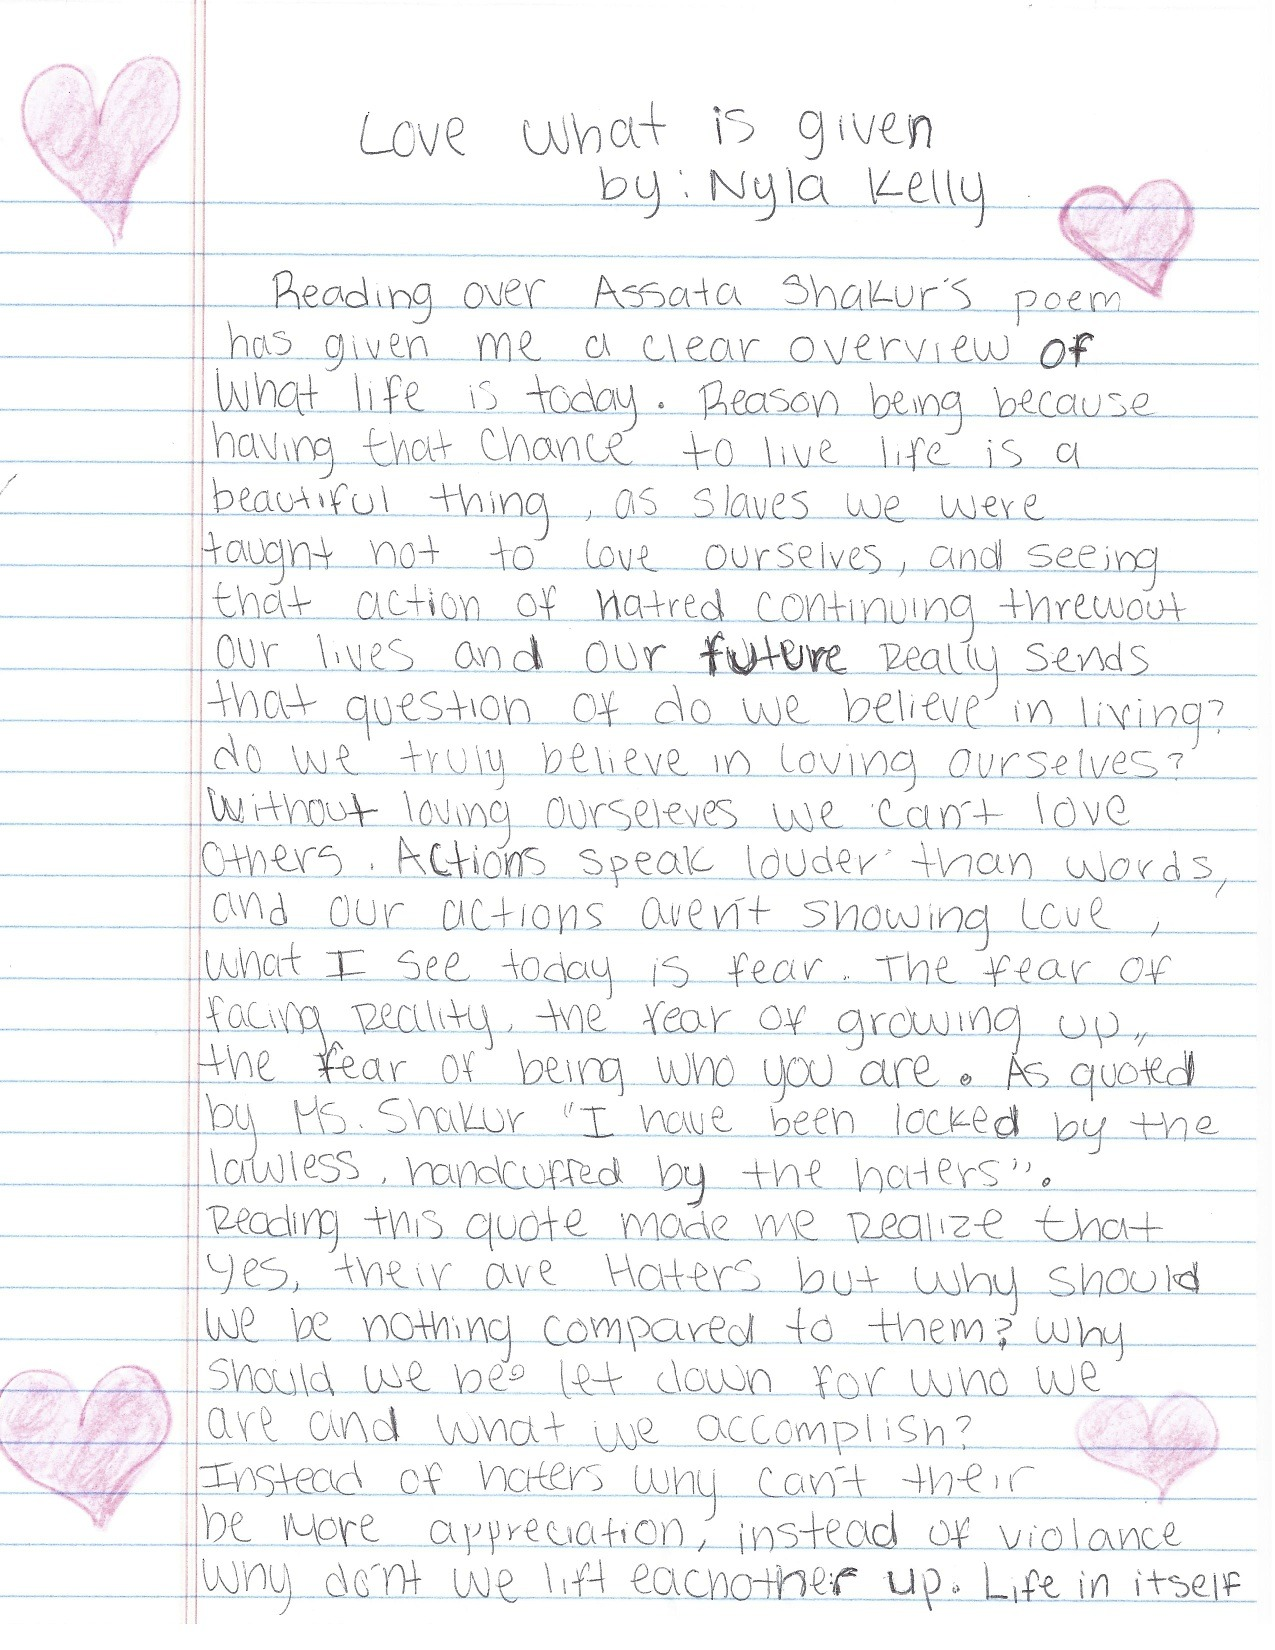 education in wuthering heights essay •wuthering heights is famous due to emily bronte's use of doubles or 'shadowing' both mother (catherine earnshaw) and daughter (catherine linton) share a distate for those characters with a lack of education, emphasizing the victorian era's obsession with education and the important role it played in class distinction.